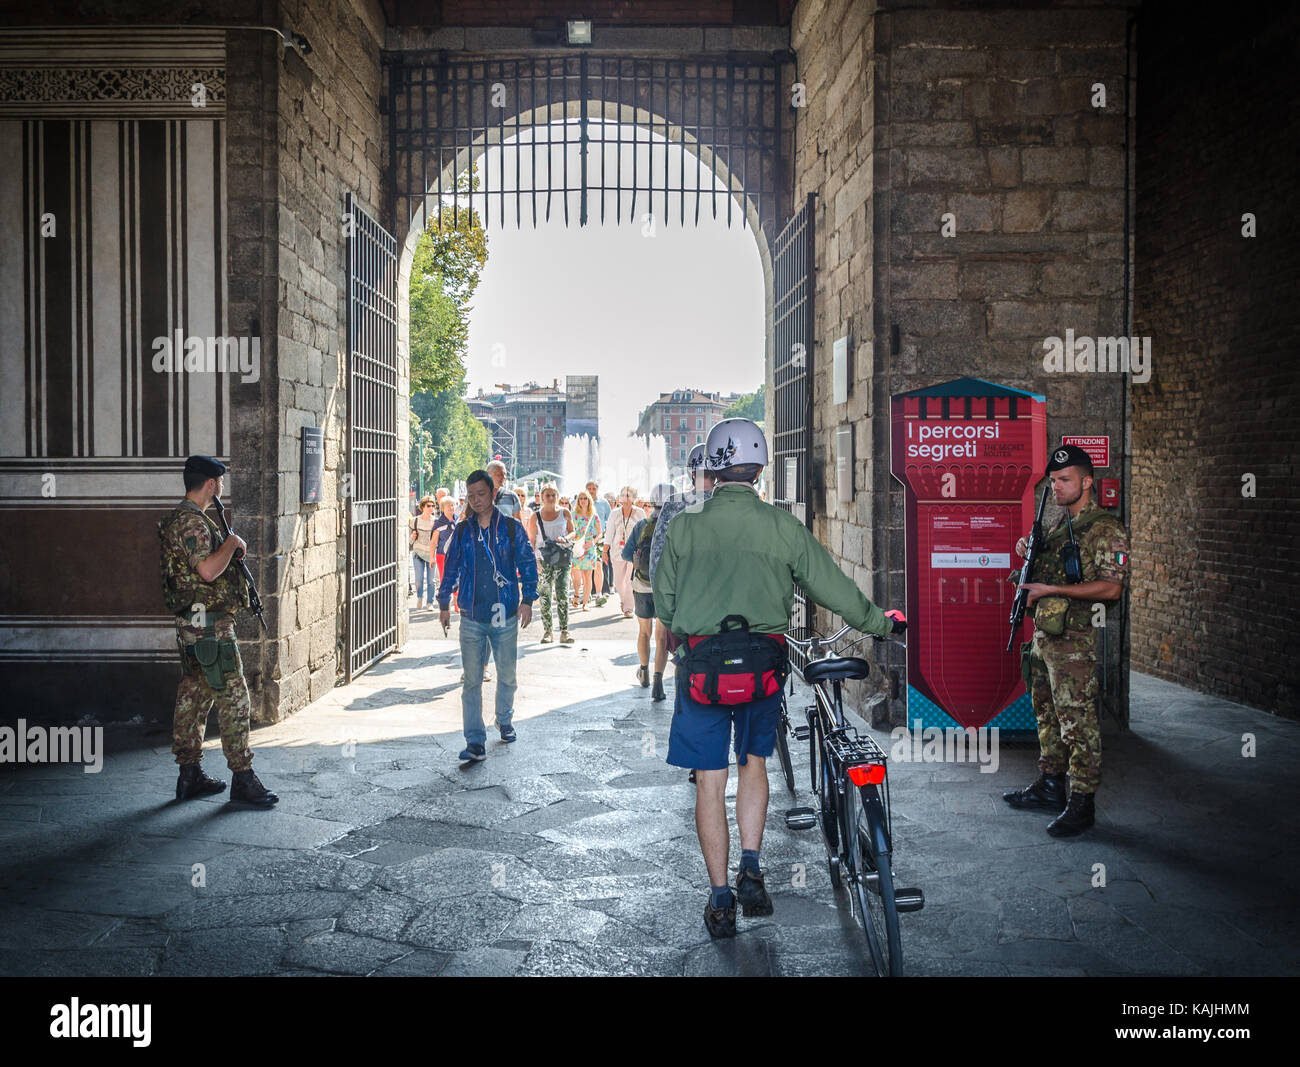 two-italian-army-soldiers-stand-on-guard-at-the-entrance-of-sforzesco-KAJHMM.jpg